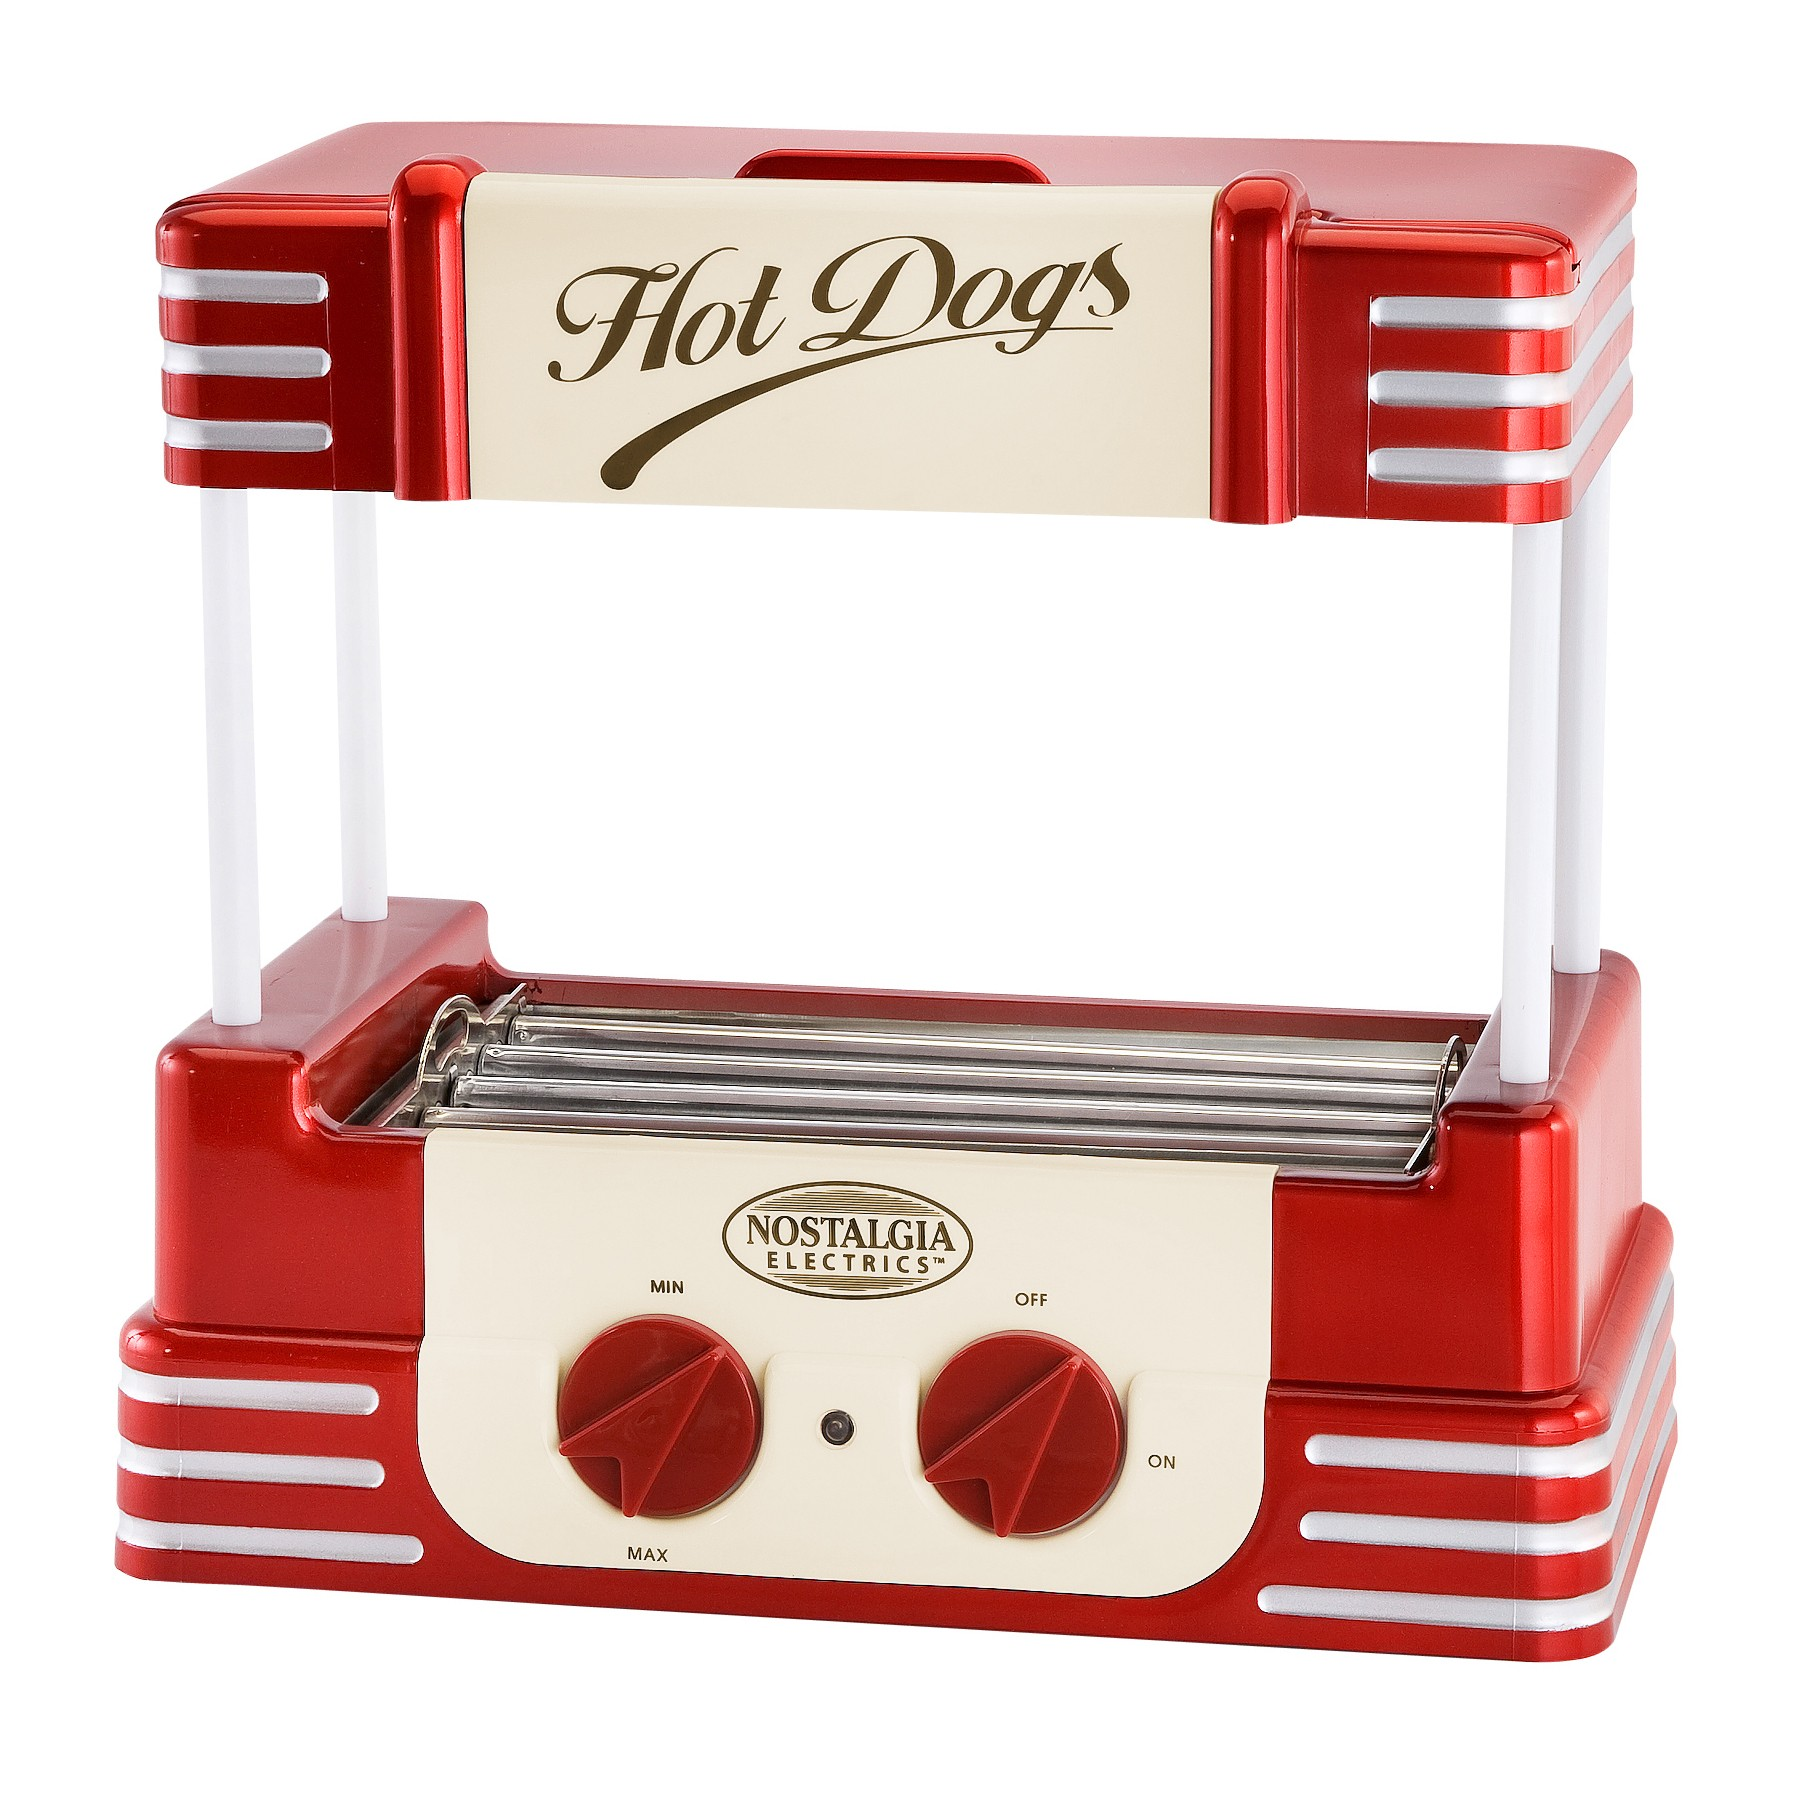 Nostalgia Electrics RHD-800 Retro Hot Dog Roller EMG742